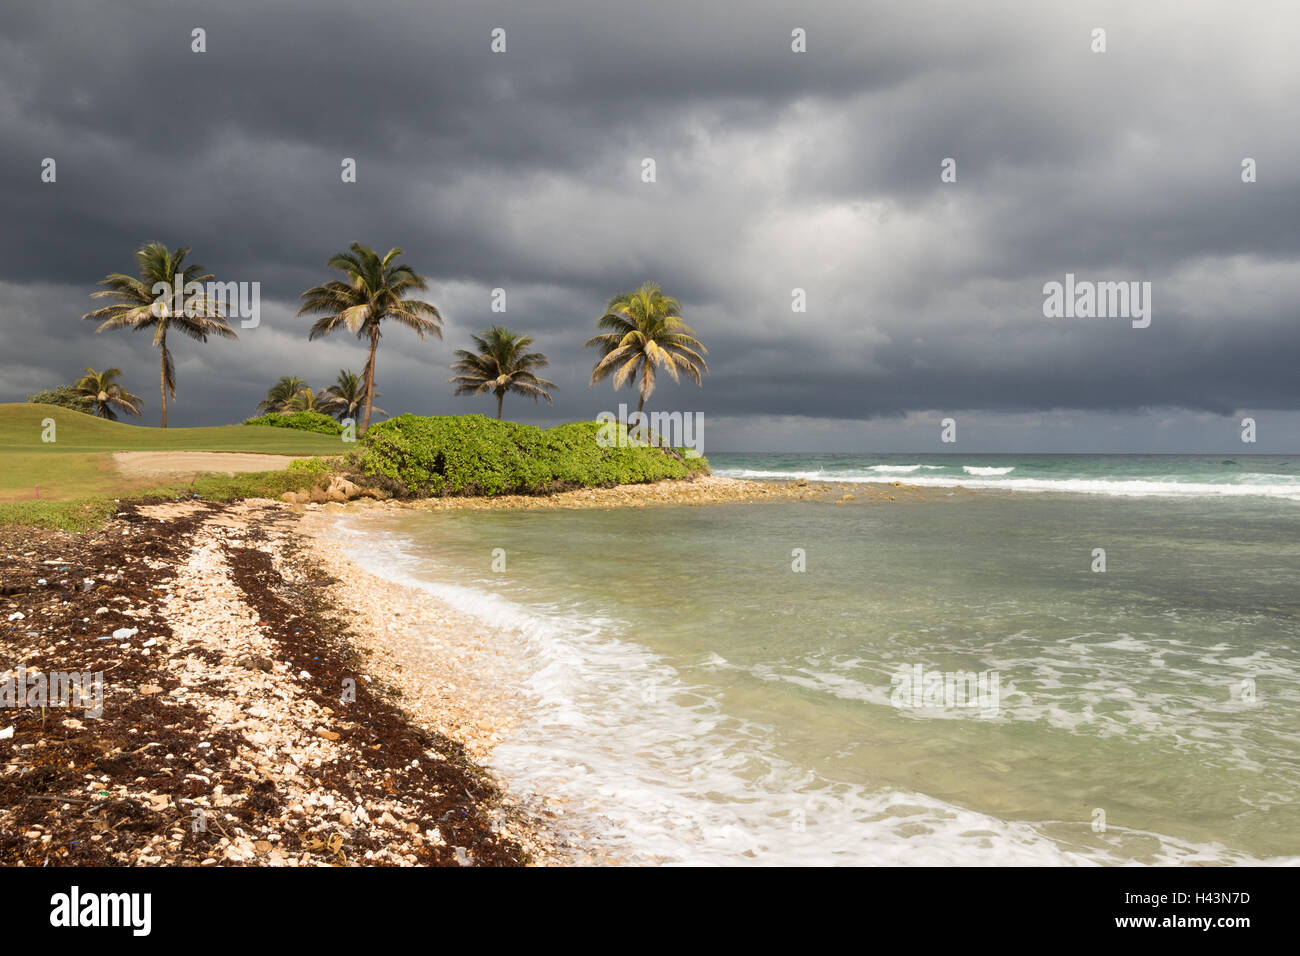 Stormy beach front in Jamaica - Stock Image